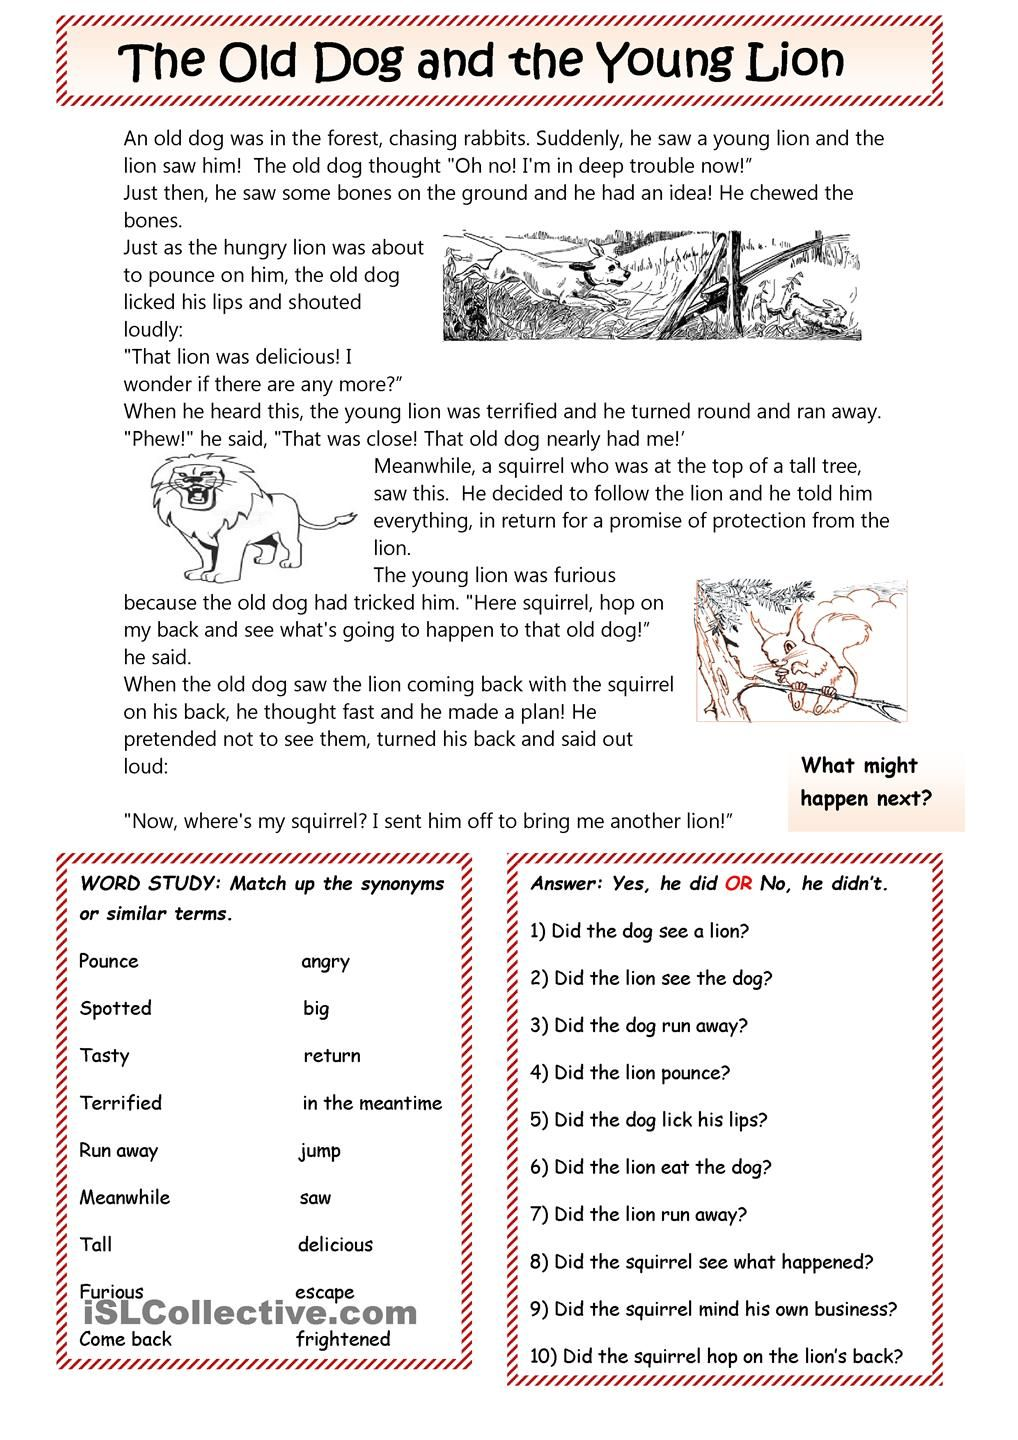 The Dog and the Lion: a fable. | Teaching | Pinterest | Englisch und ...